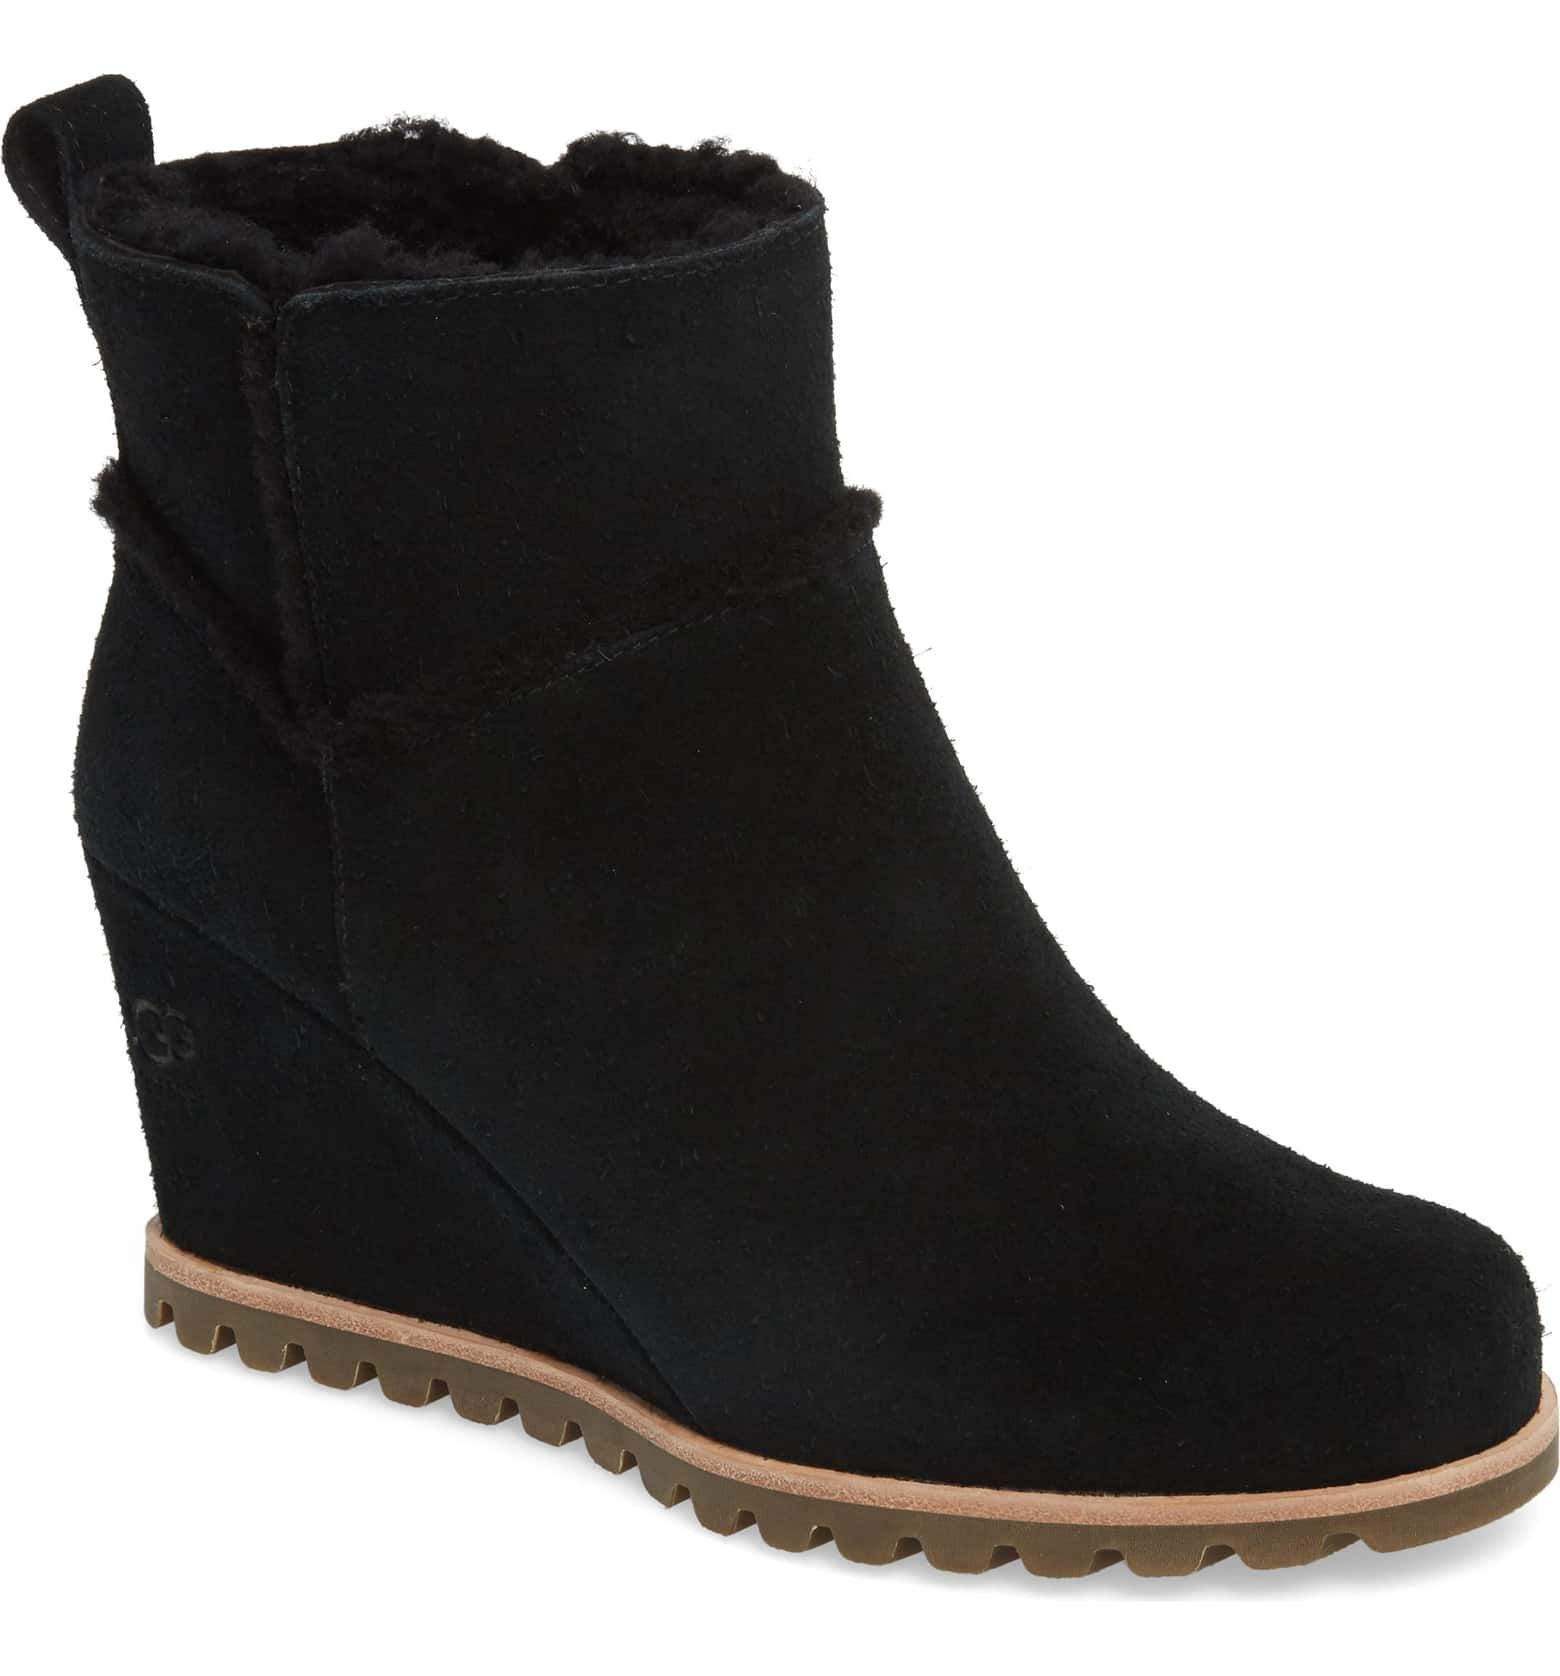 882c495cdc6 Marte Waterproof Wedge Bootie, Main, color, BLACK, size 9 ...